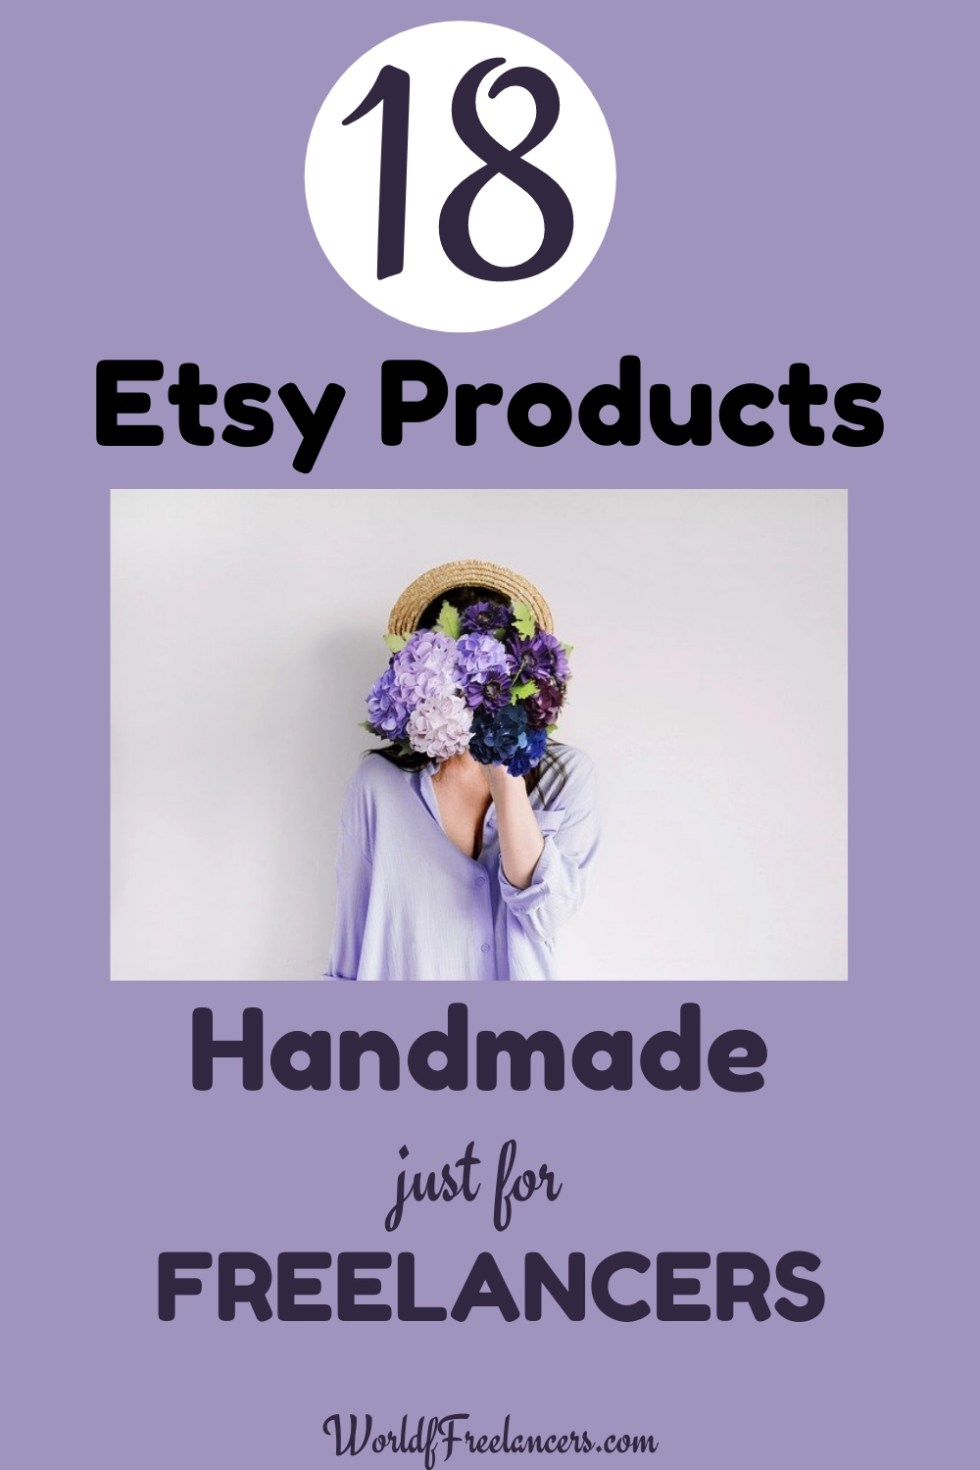 Pinterest pin with text saying 18 Etsy products handmade just for freelancers, worldoffreelancers.com with image of woman in purple blouse and straw hat hiding her face with a bouquet of purple flowers